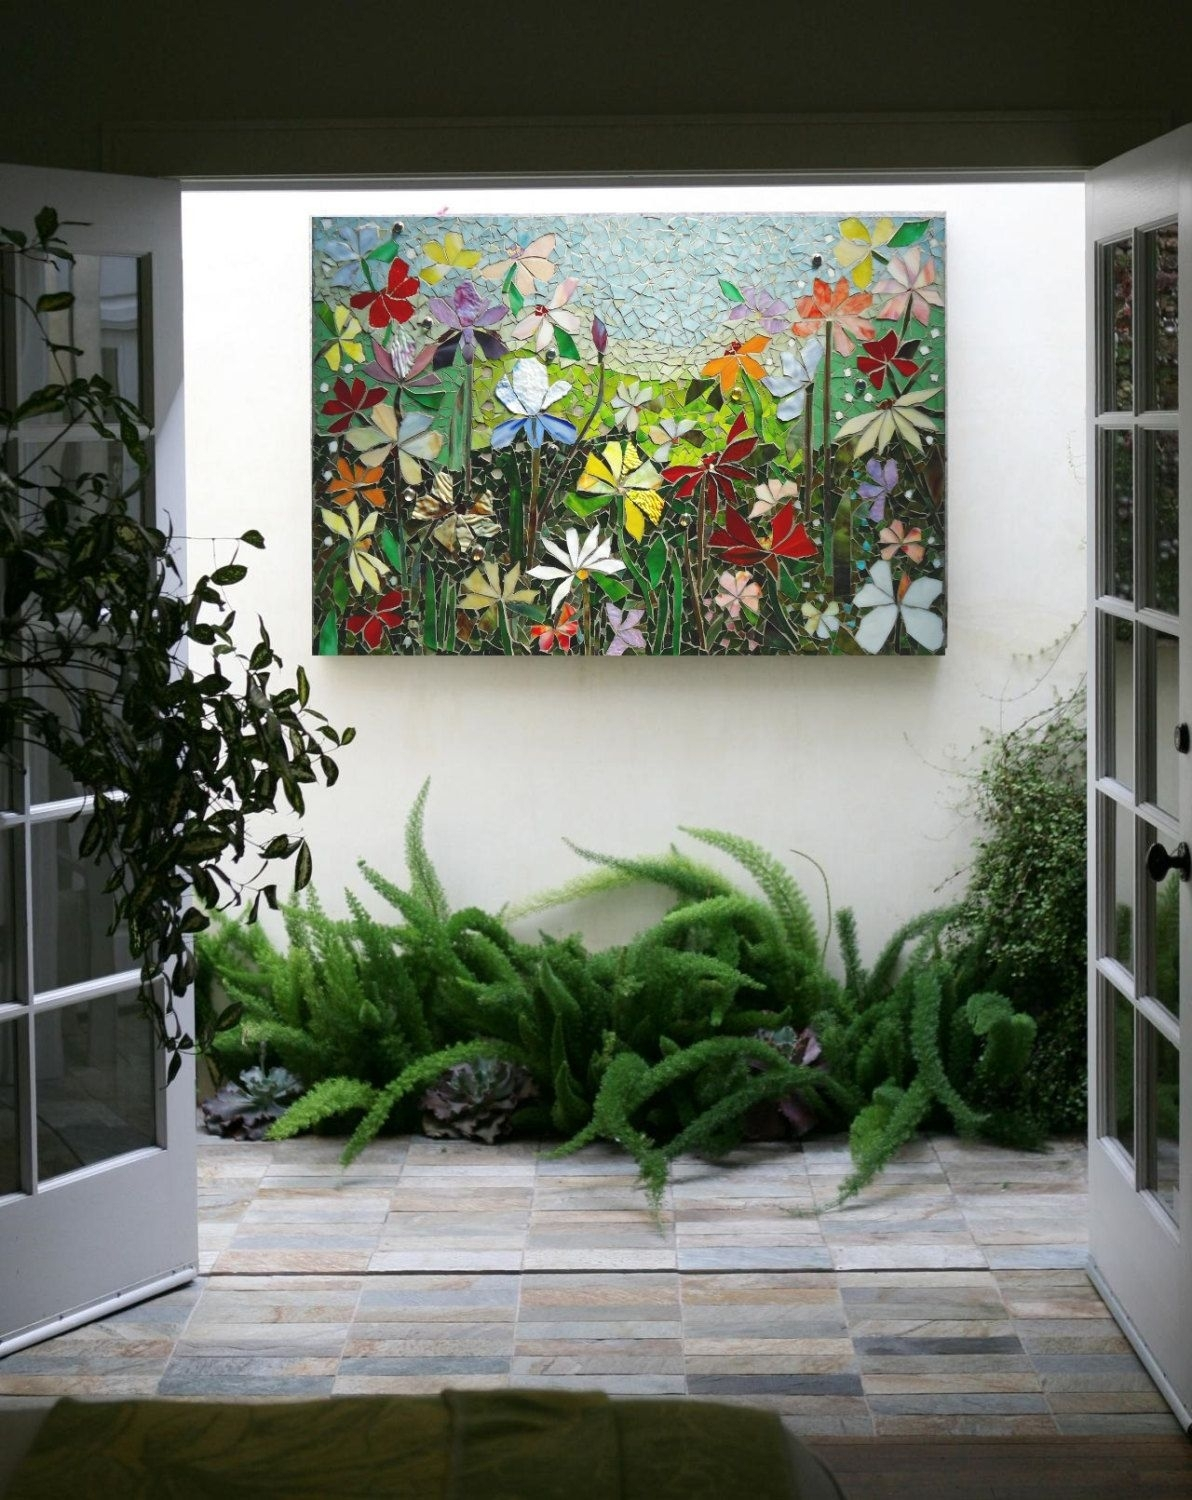 Mosaic Wall Art Stained Glass Wall Decor Floral Garden Indoor Pertaining To Stained Glass Wall Art (View 18 of 20)